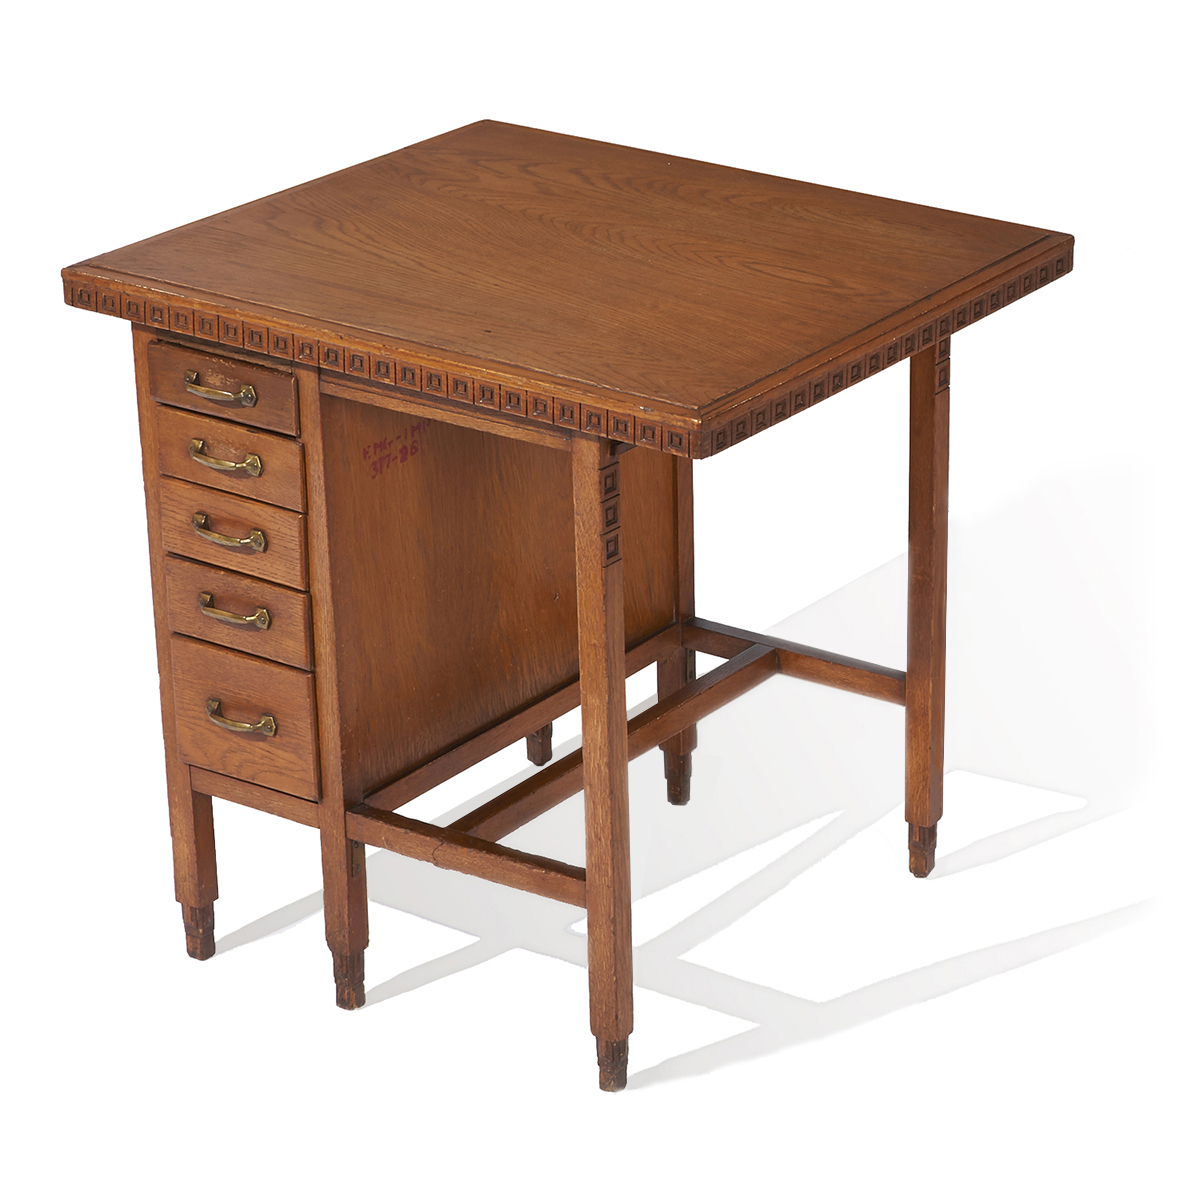 Frank Lloyd Wright, side table